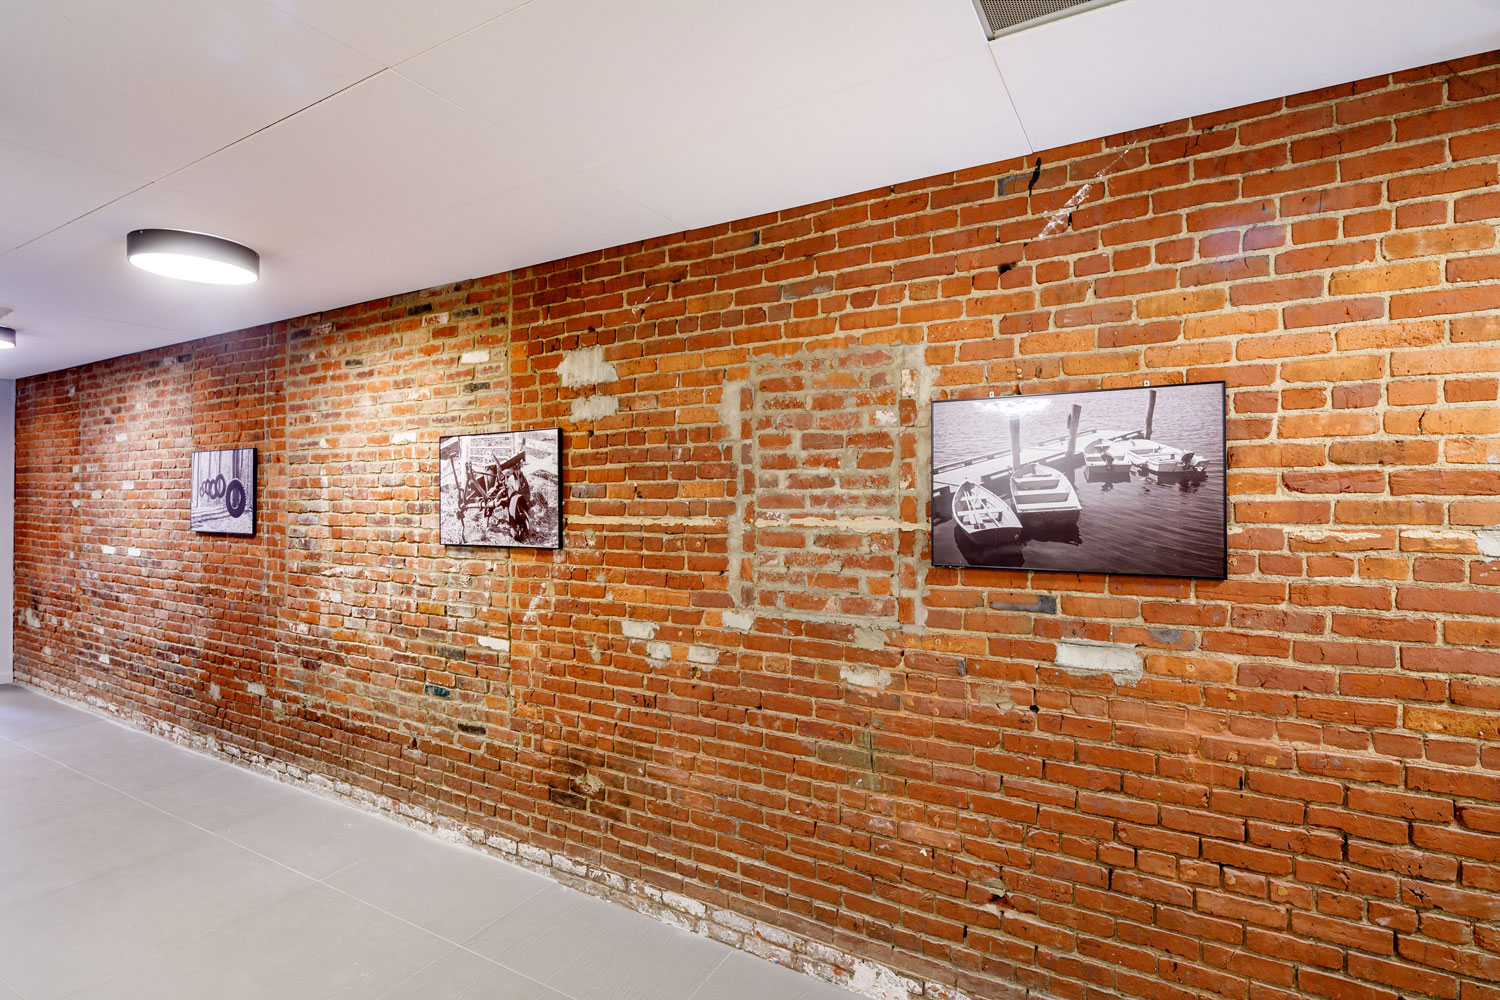 Exposed Brick Accents at The Warehouse Apartments in Somerville, New Jersey